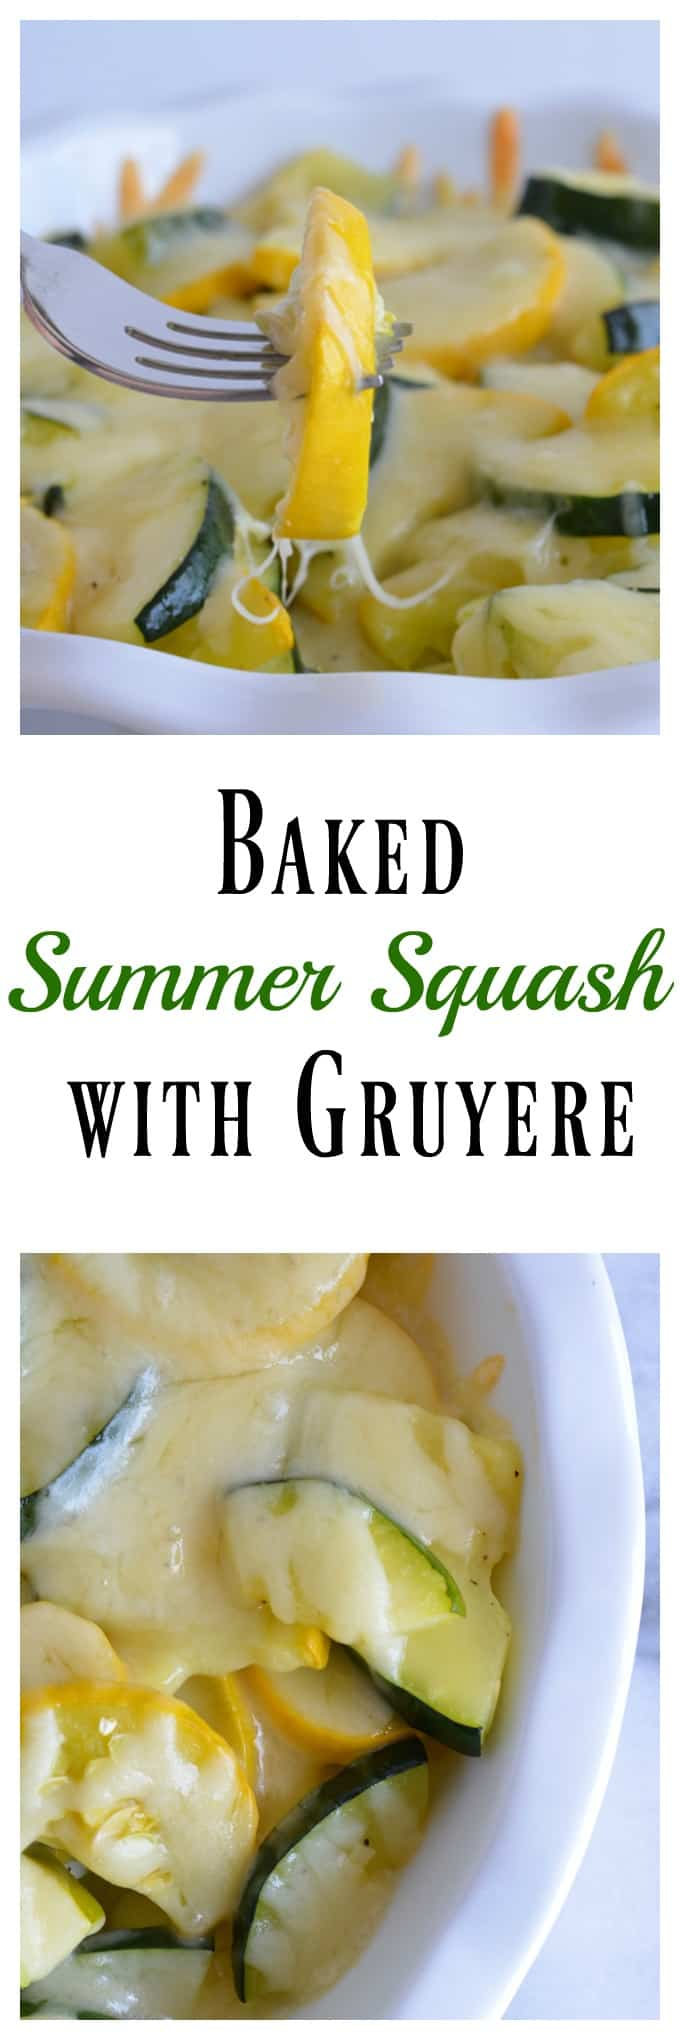 Baked Summer Squash with Gruyere.